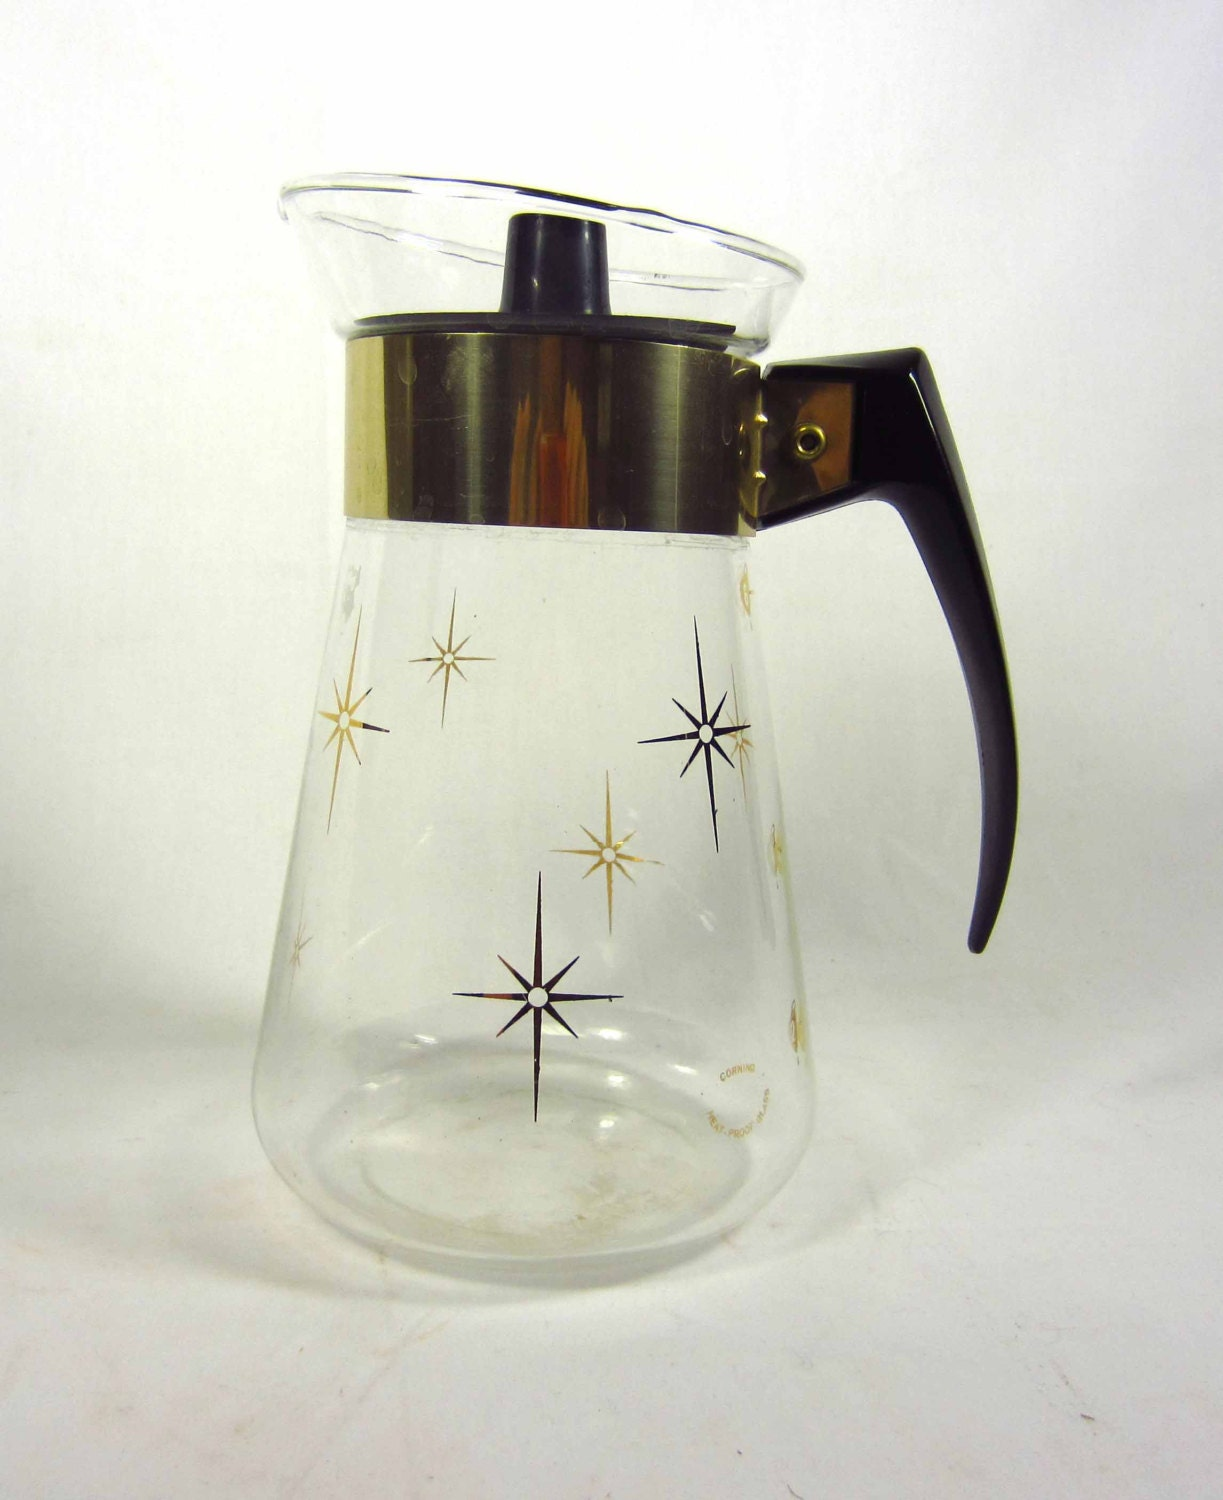 Vintage Corning Glass Coffee Carafe with Gold Trim Mid